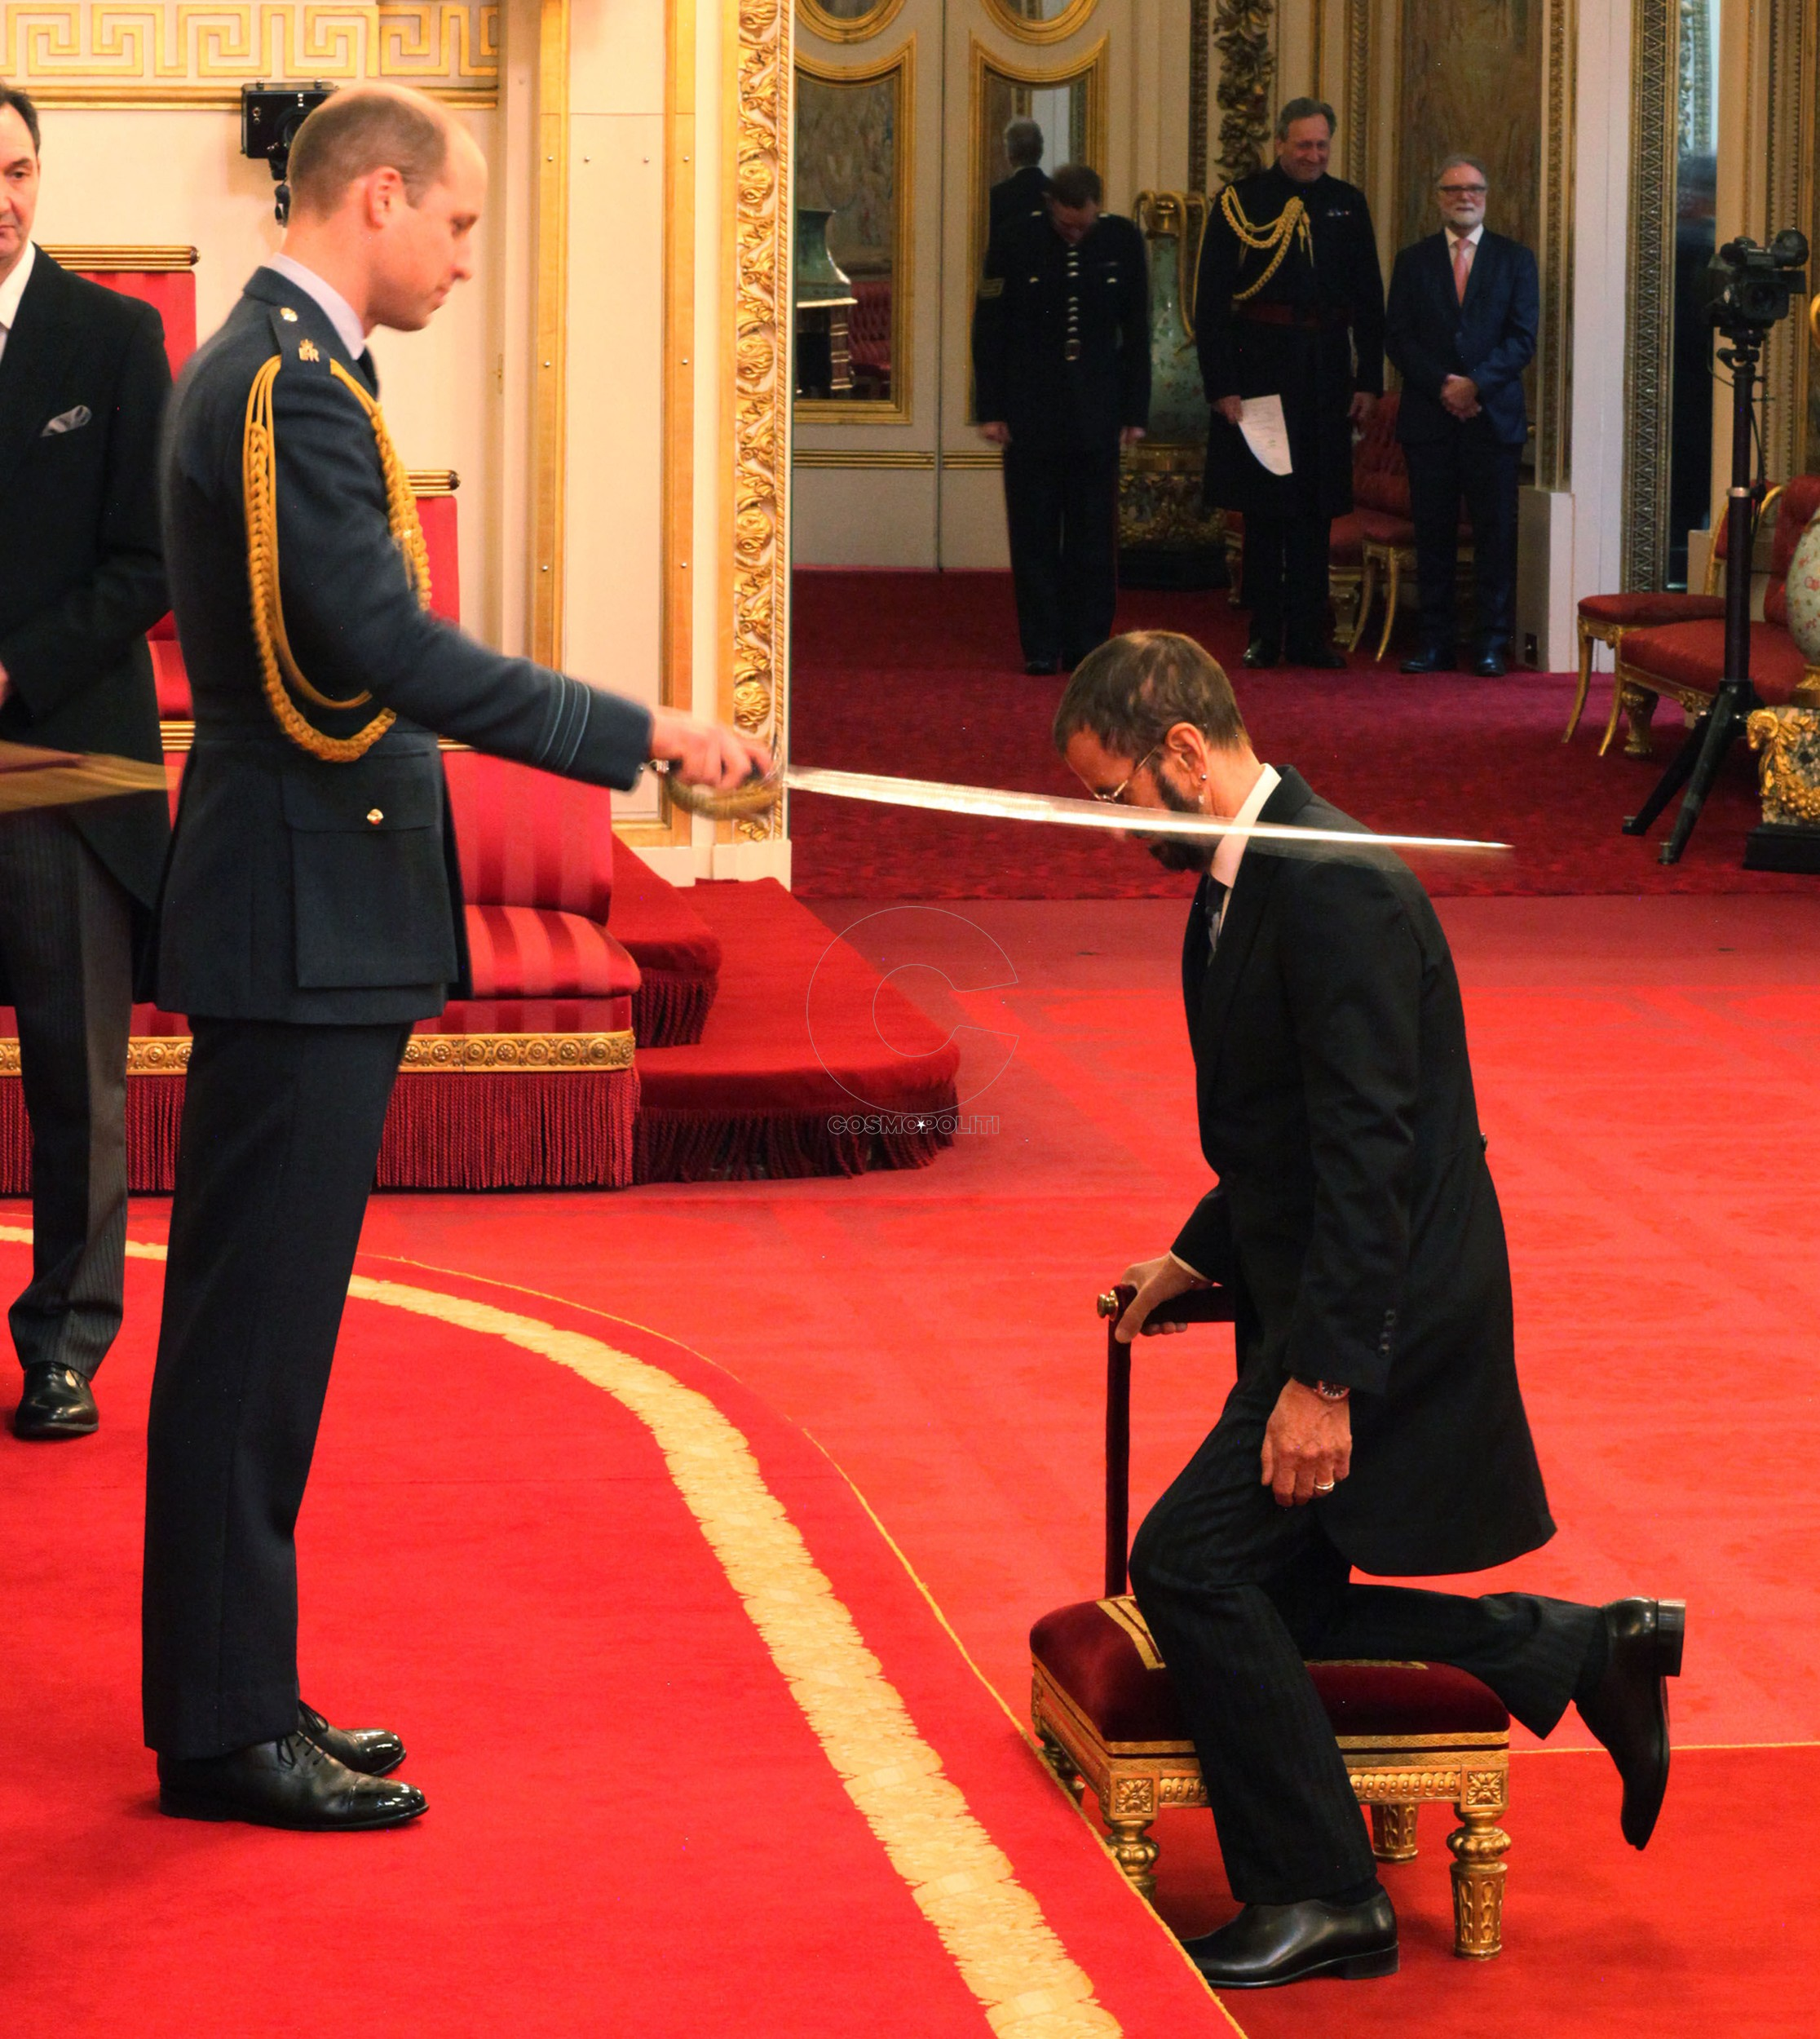 Investitures at Buckingham Palace. Beatle Sir Richard Starkey, also known as Ringo Starr, is made a Knight Bachelor of the British Empire by the Duke of Cambridge at Buckingham Palace during an Investiture ceremony in London. Picture date: Tuesday March 20, 2018. Photo credit should read: Yui Mok/PA Wire URN:35611492